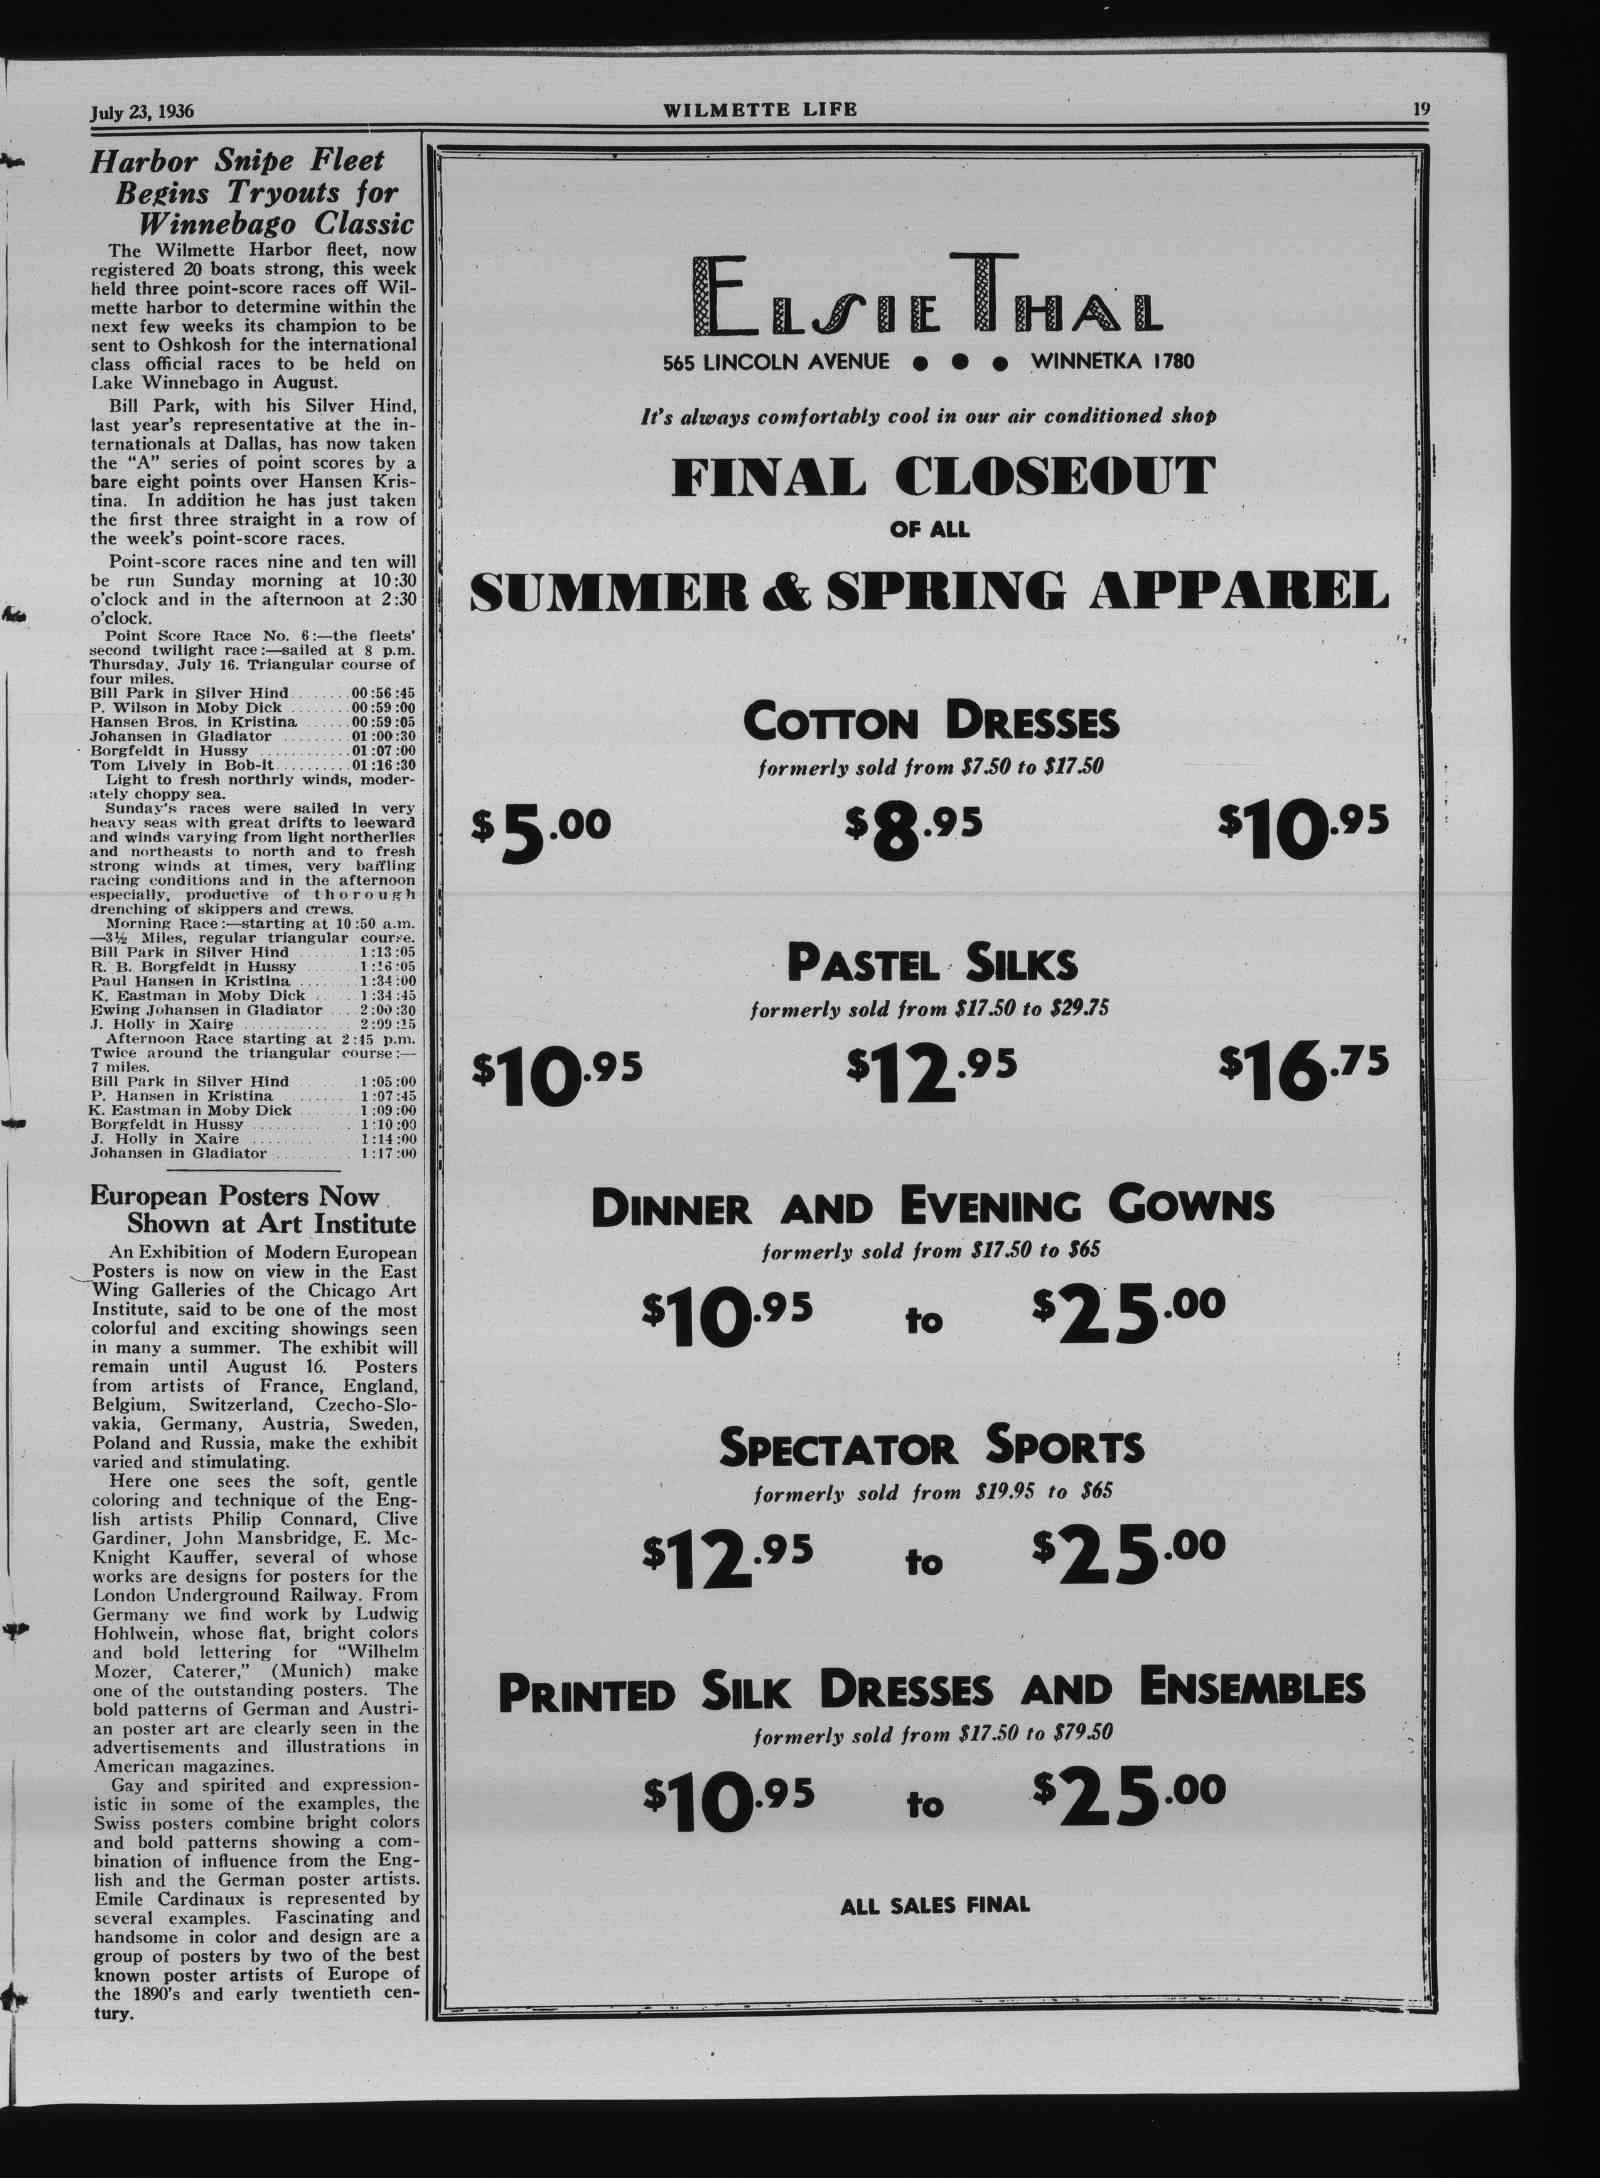 Wilmette Life (Wilmette, Illinois), 23 Jul 1936